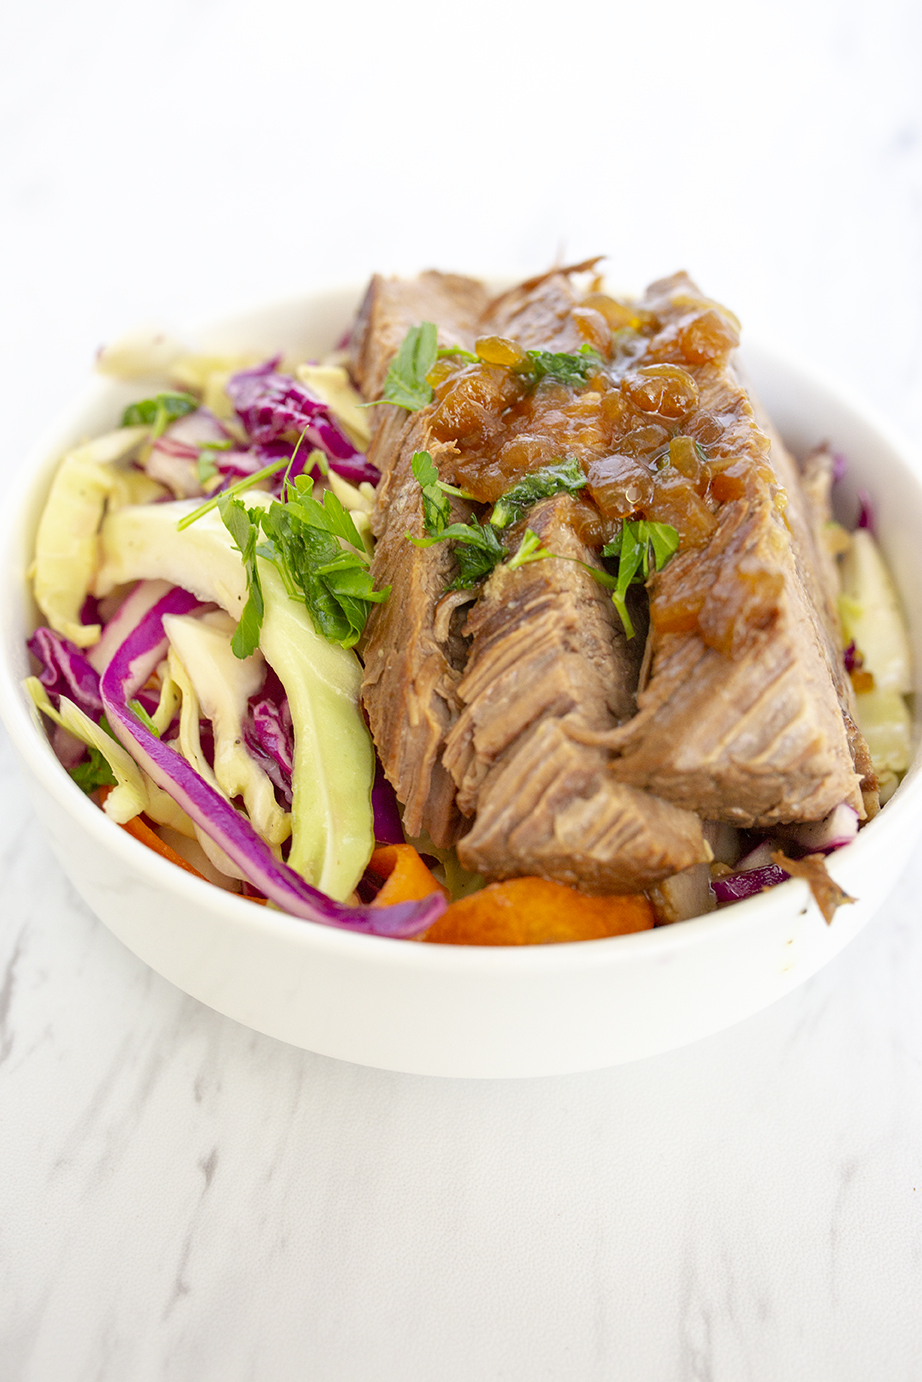 Beef Brisket served with vinegar slaw on a white bowl